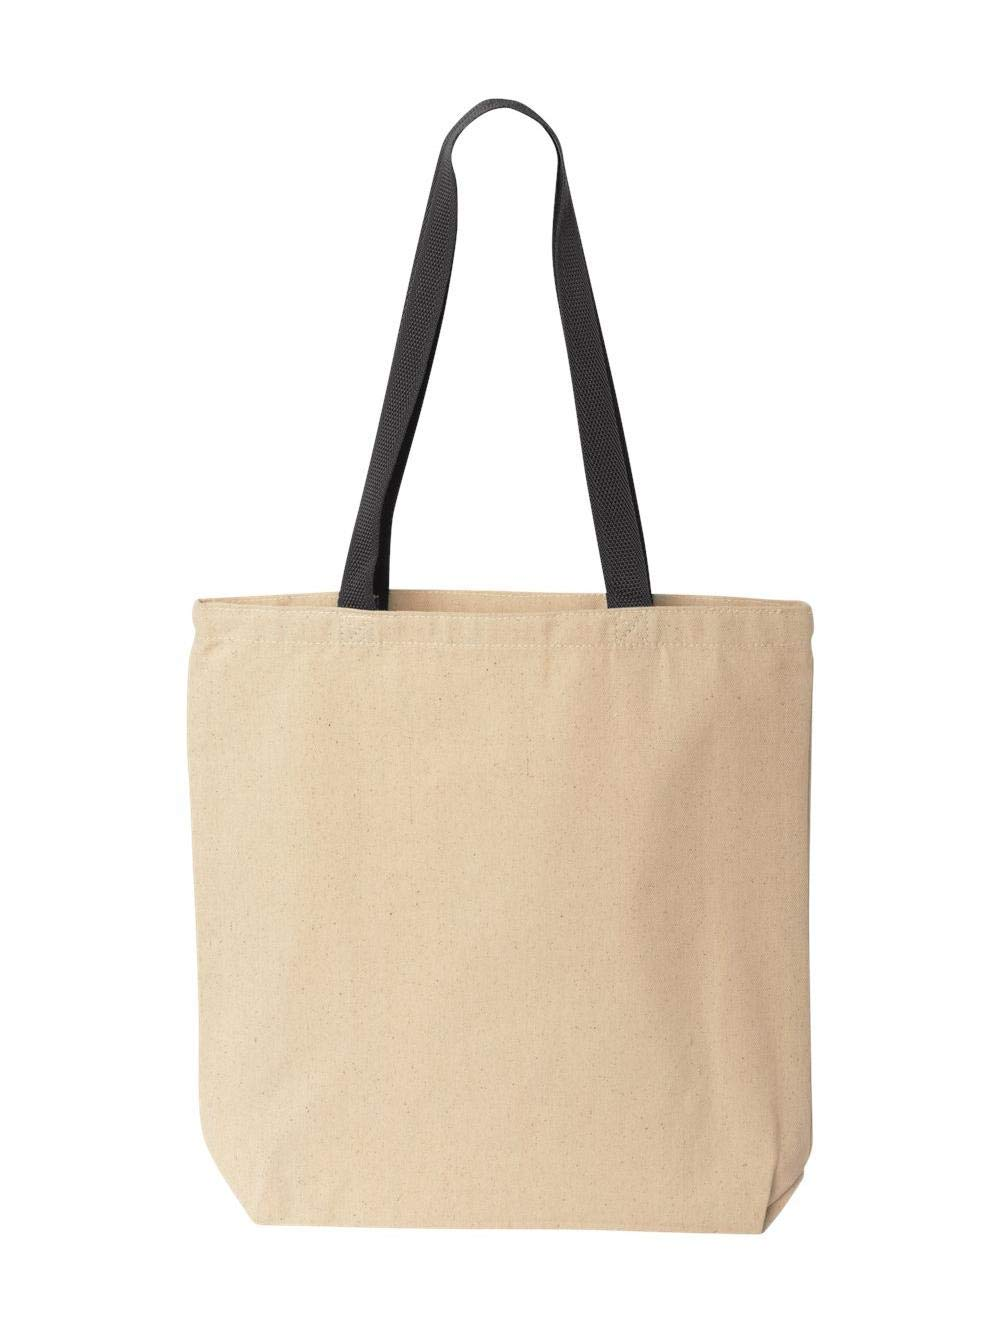 Liberty Bags Marianne Contrast Canvas Tote, One Size, Natural/Black by Liberty Bags (Image #3)